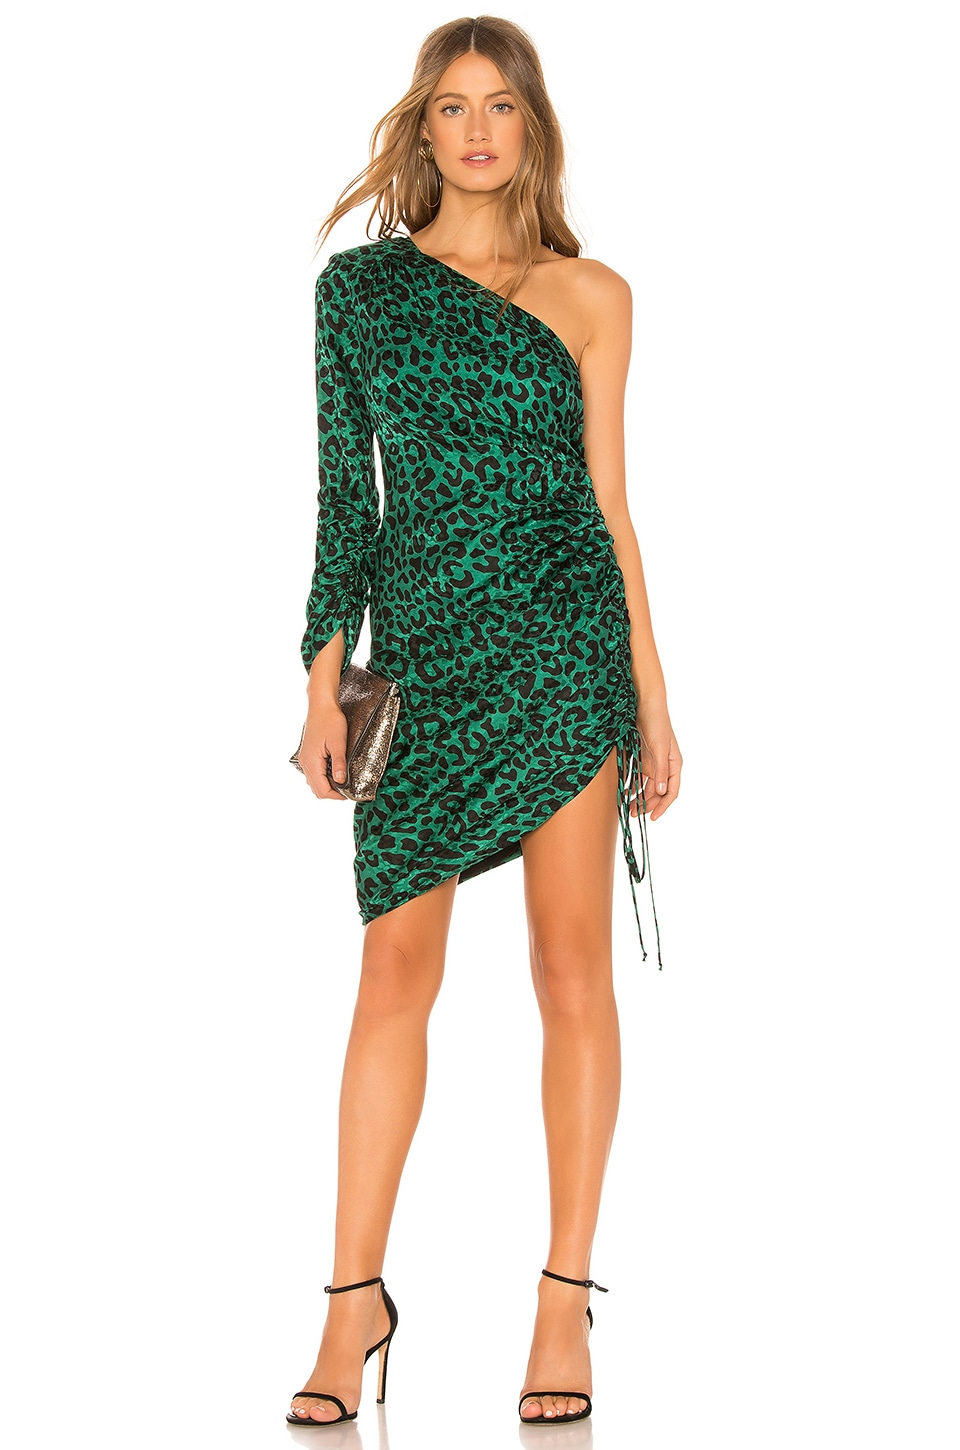 MILLY Leopard Print Jacquard Dress in Emerald